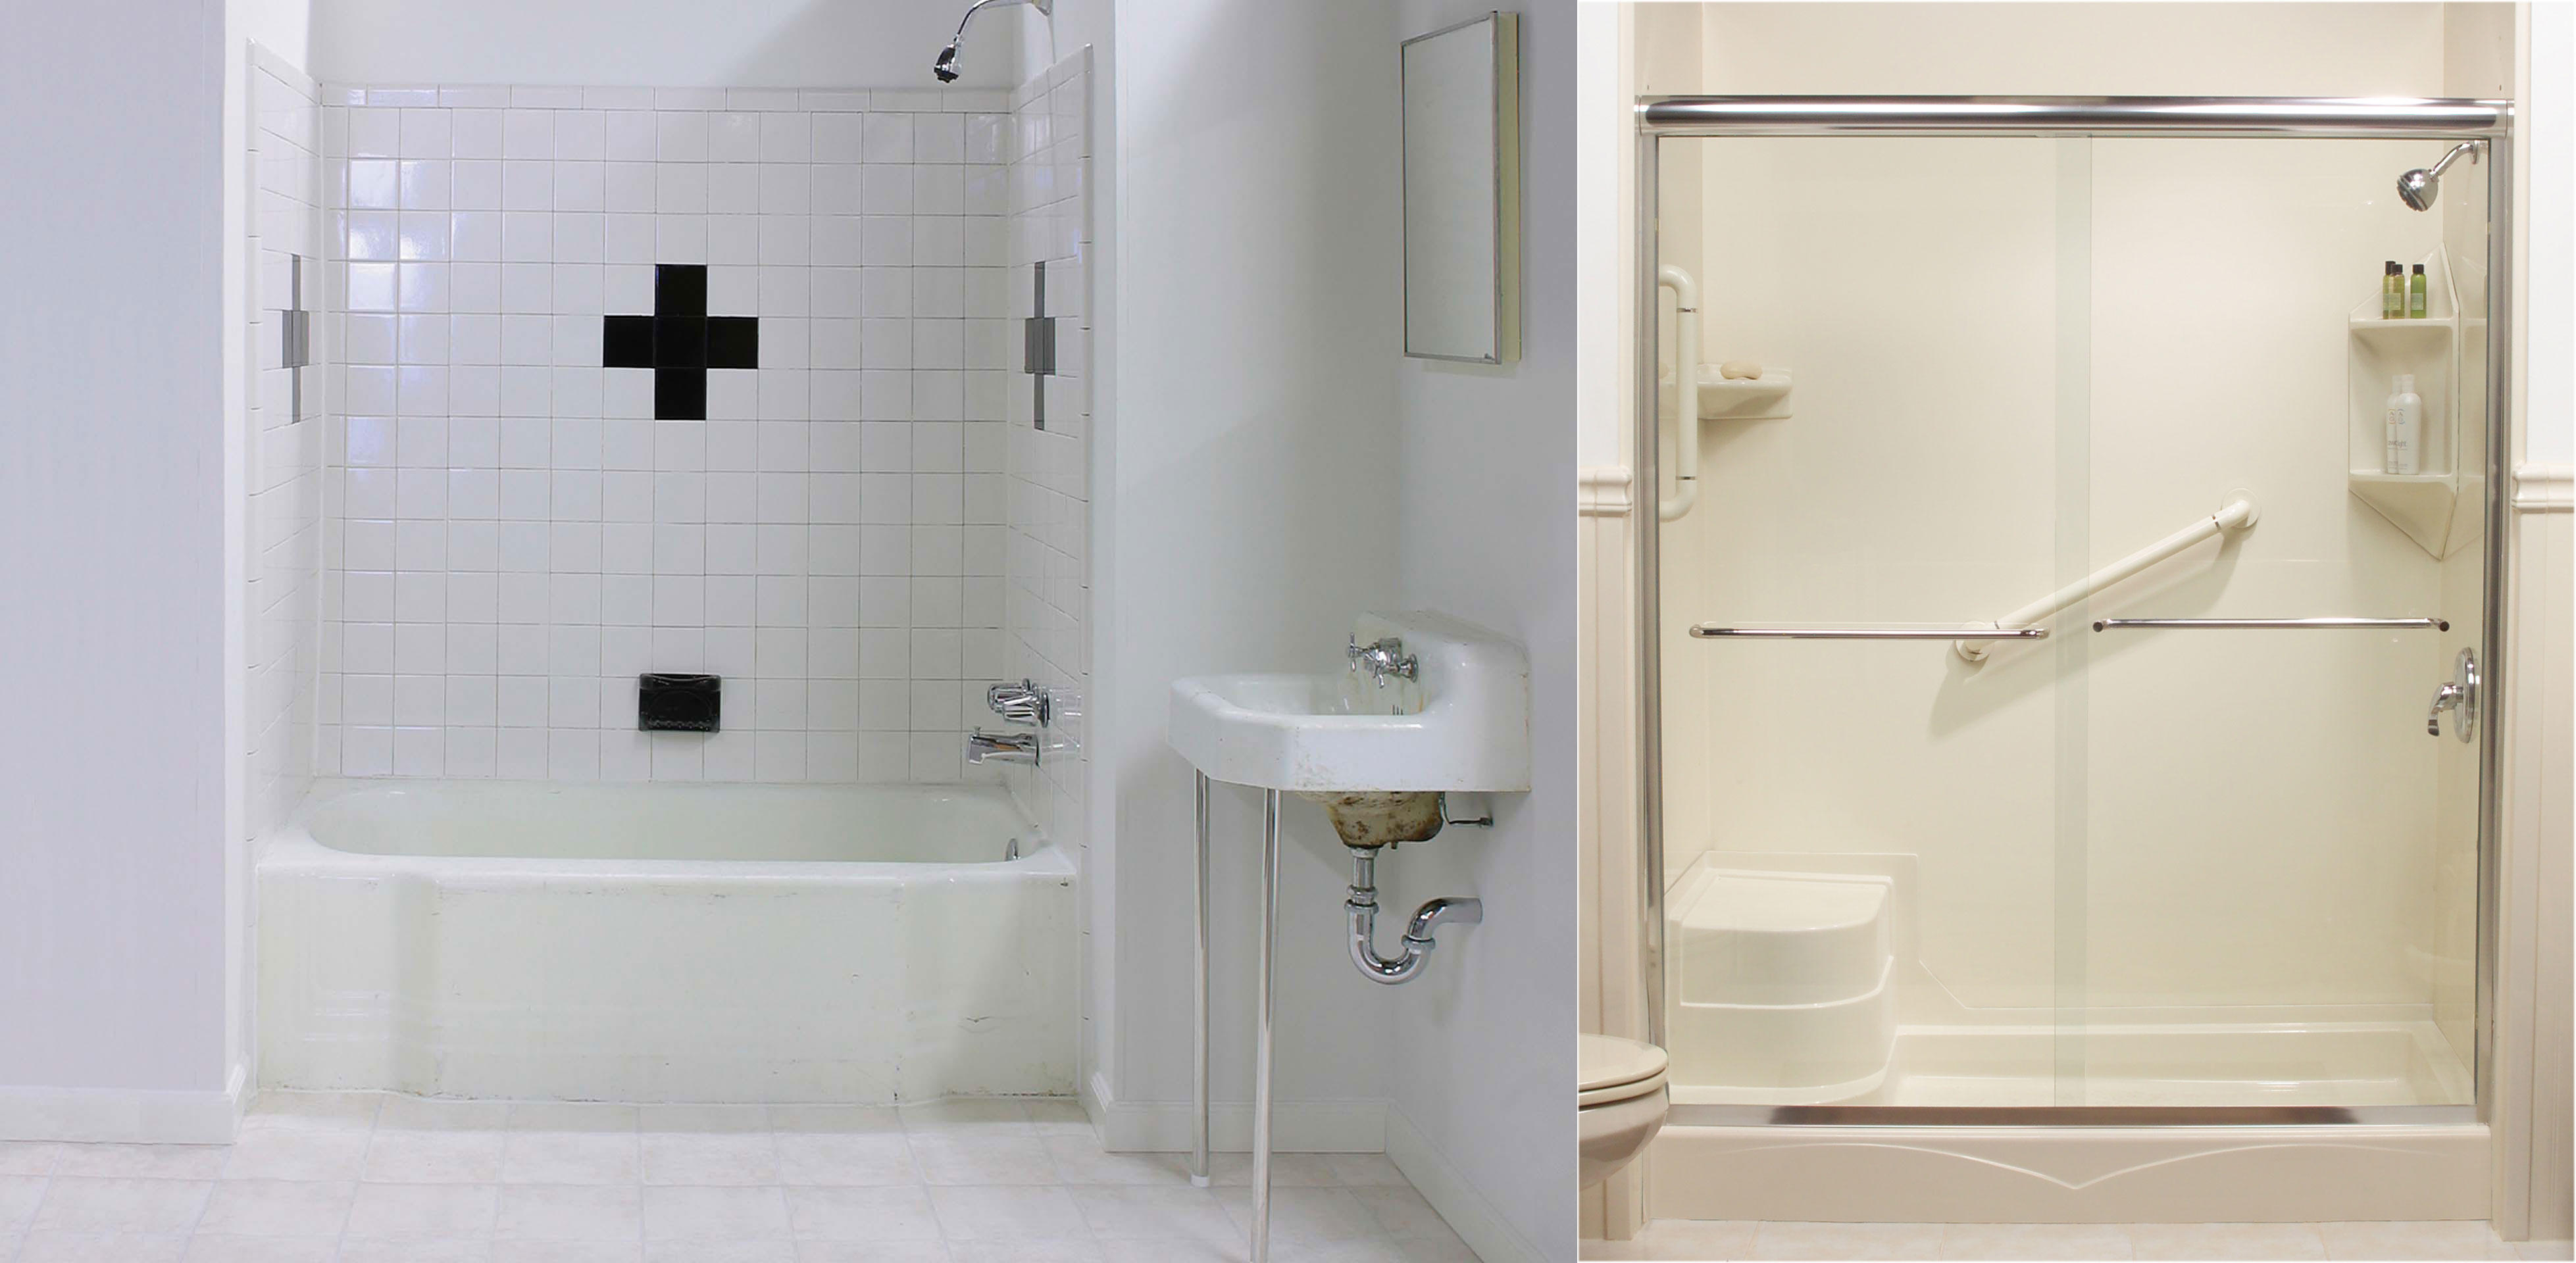 The bath connection in peoria il 309 685 5 for Bath remodel peoria il